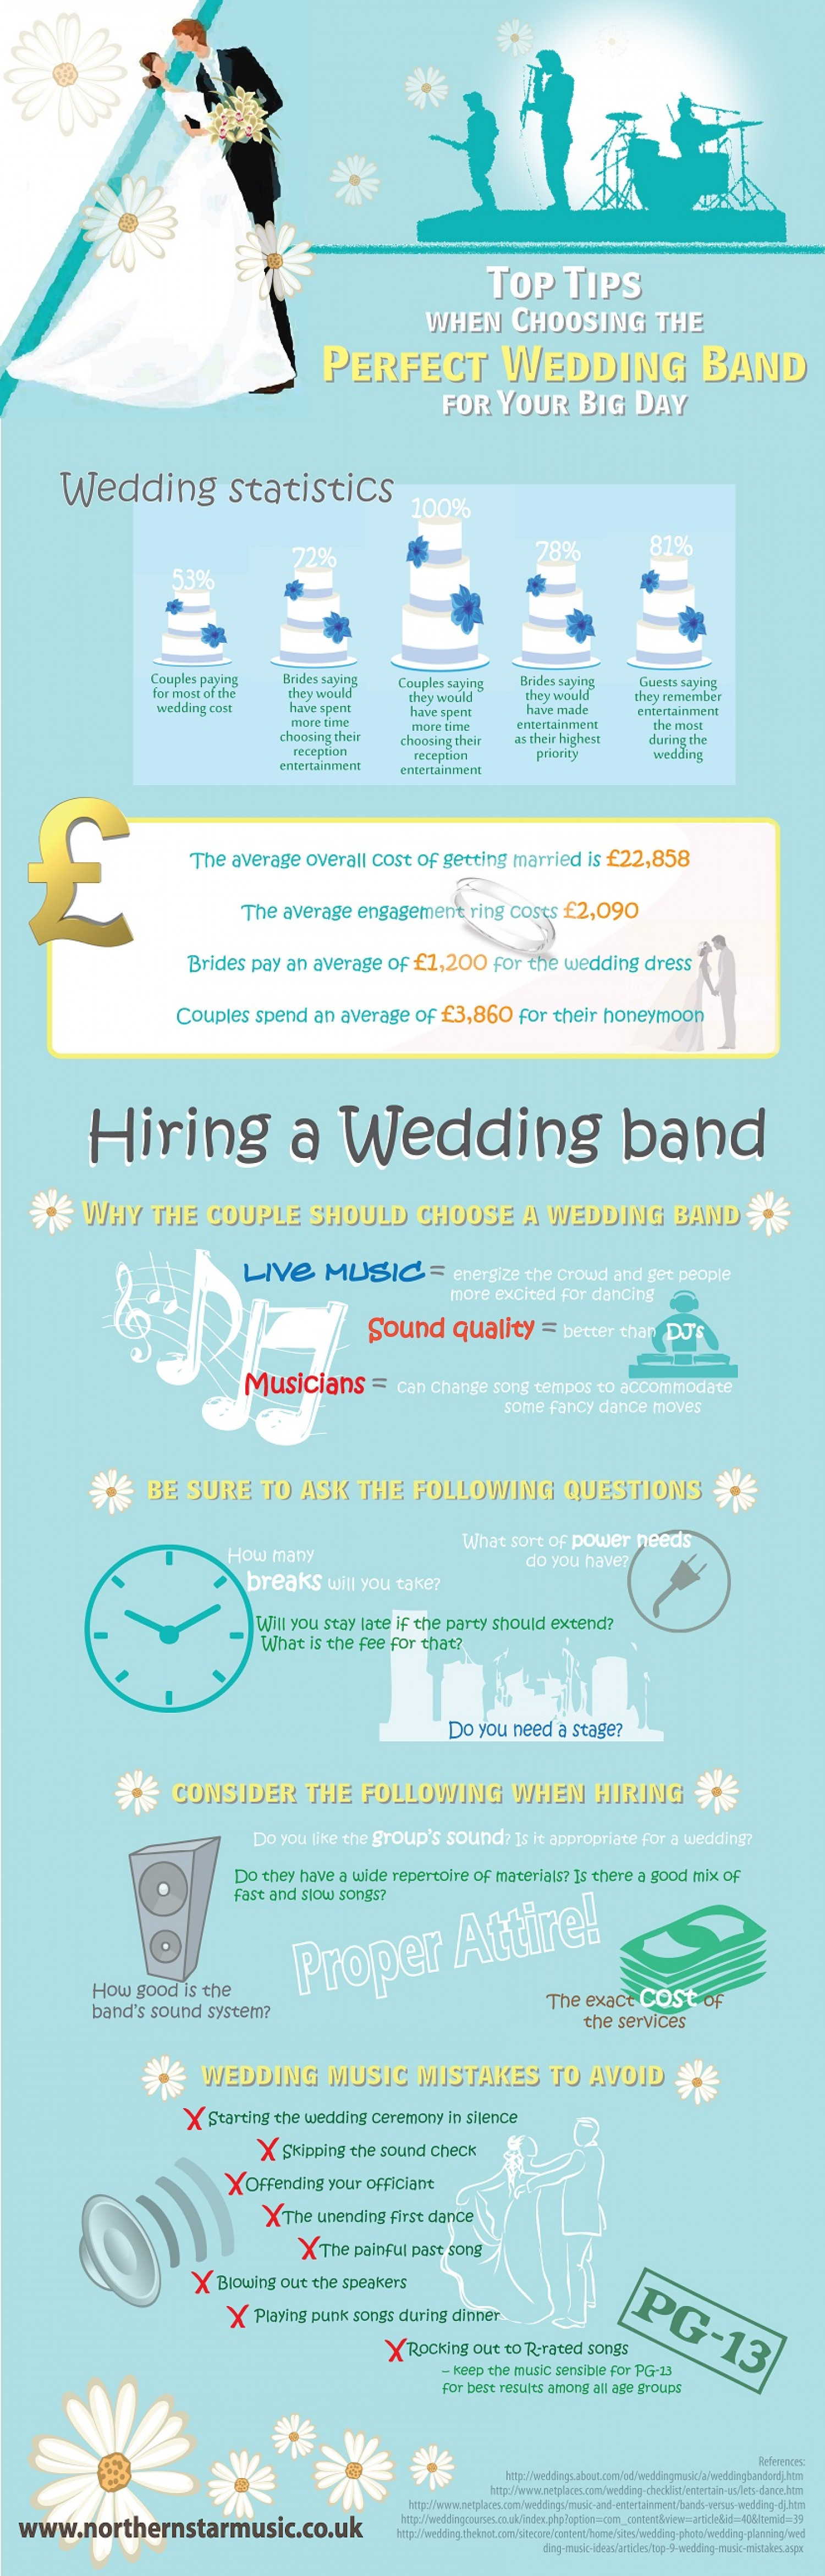 Top Tips When Choosing the Perfect Wedding Band for Your Big Day Infographic